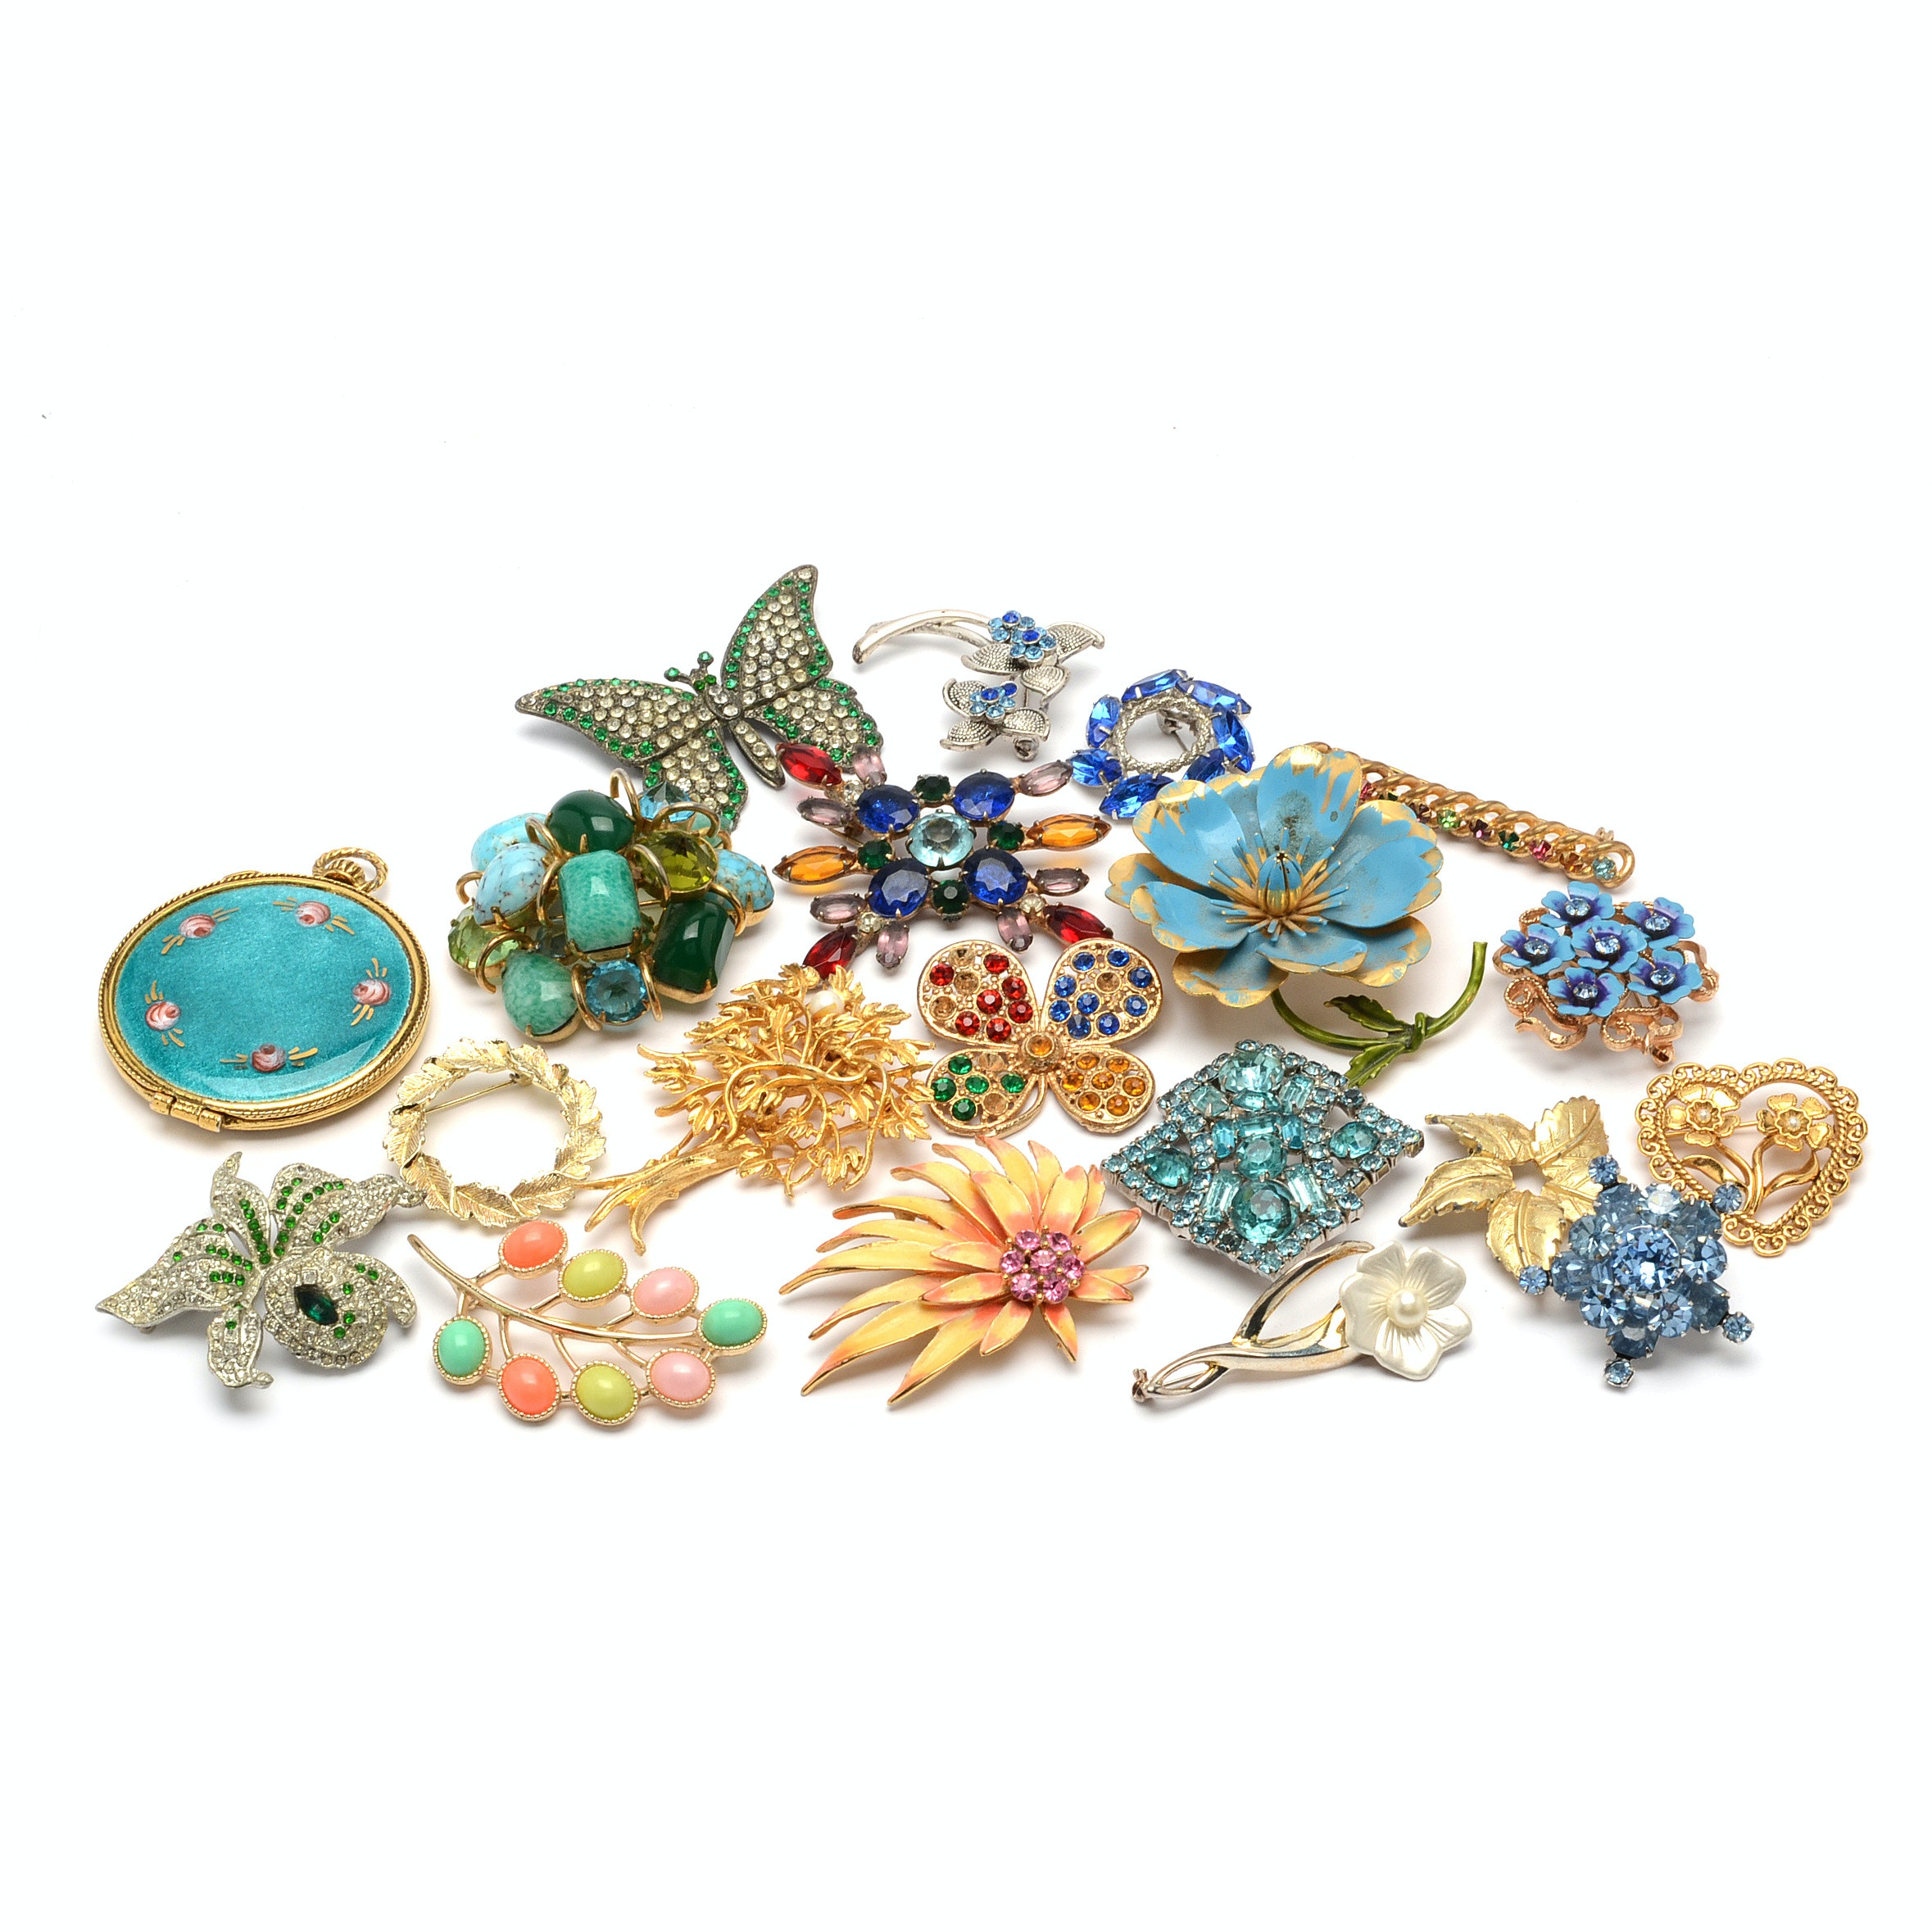 Selection of Gold and Silver Tone Brooches Including Coro with Enameled Compact